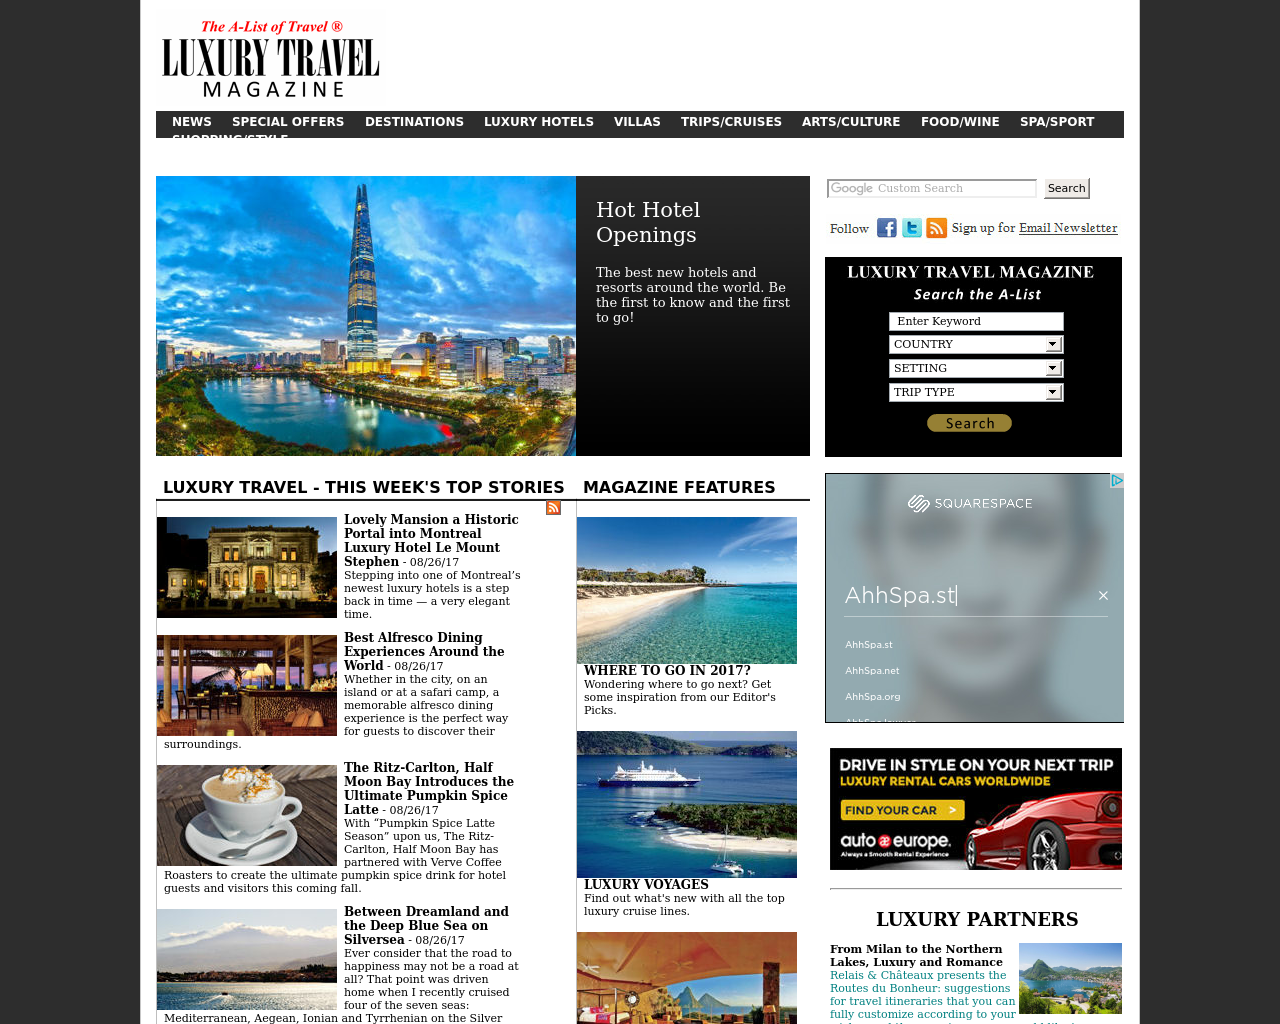 Luxurytravelmagazine-Advertising-Reviews-Pricing